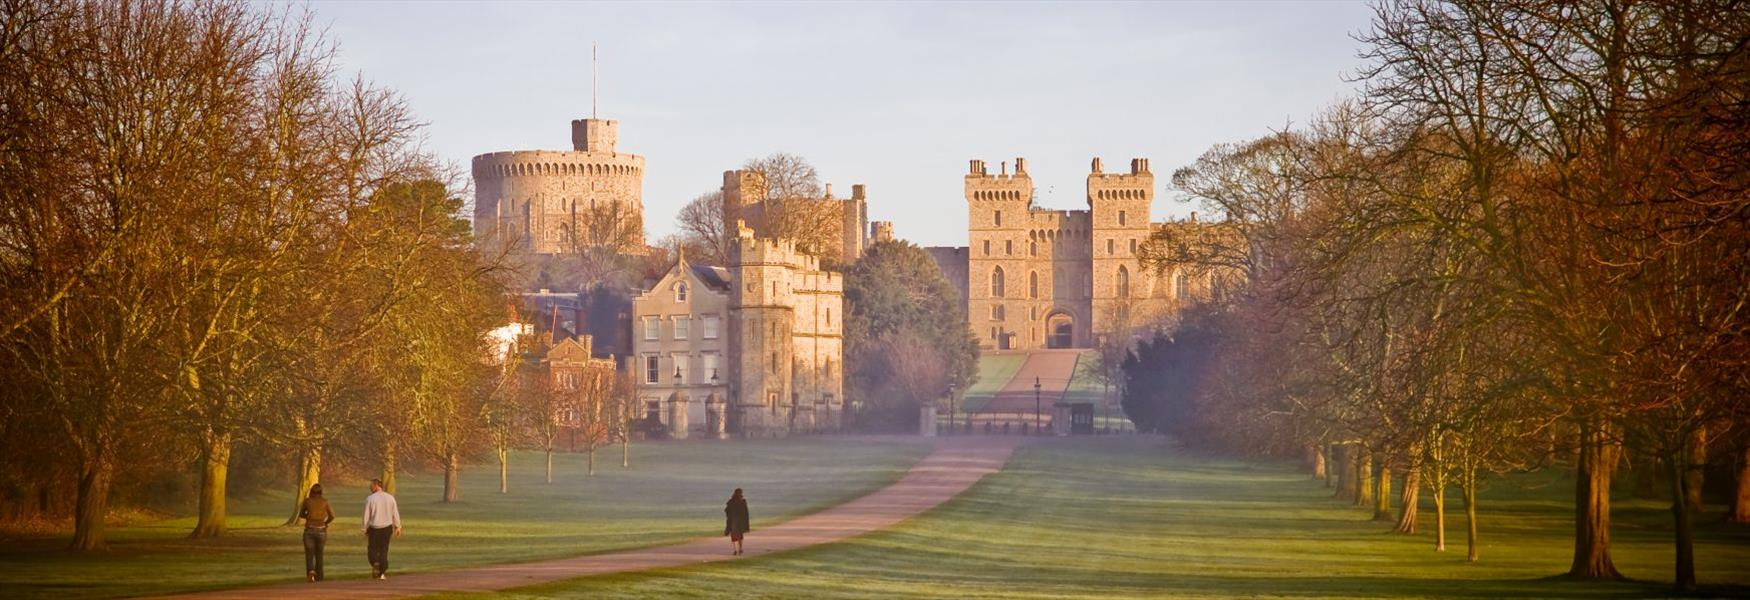 Windsor Castle and the Long Walk, photographed by Doug Harding